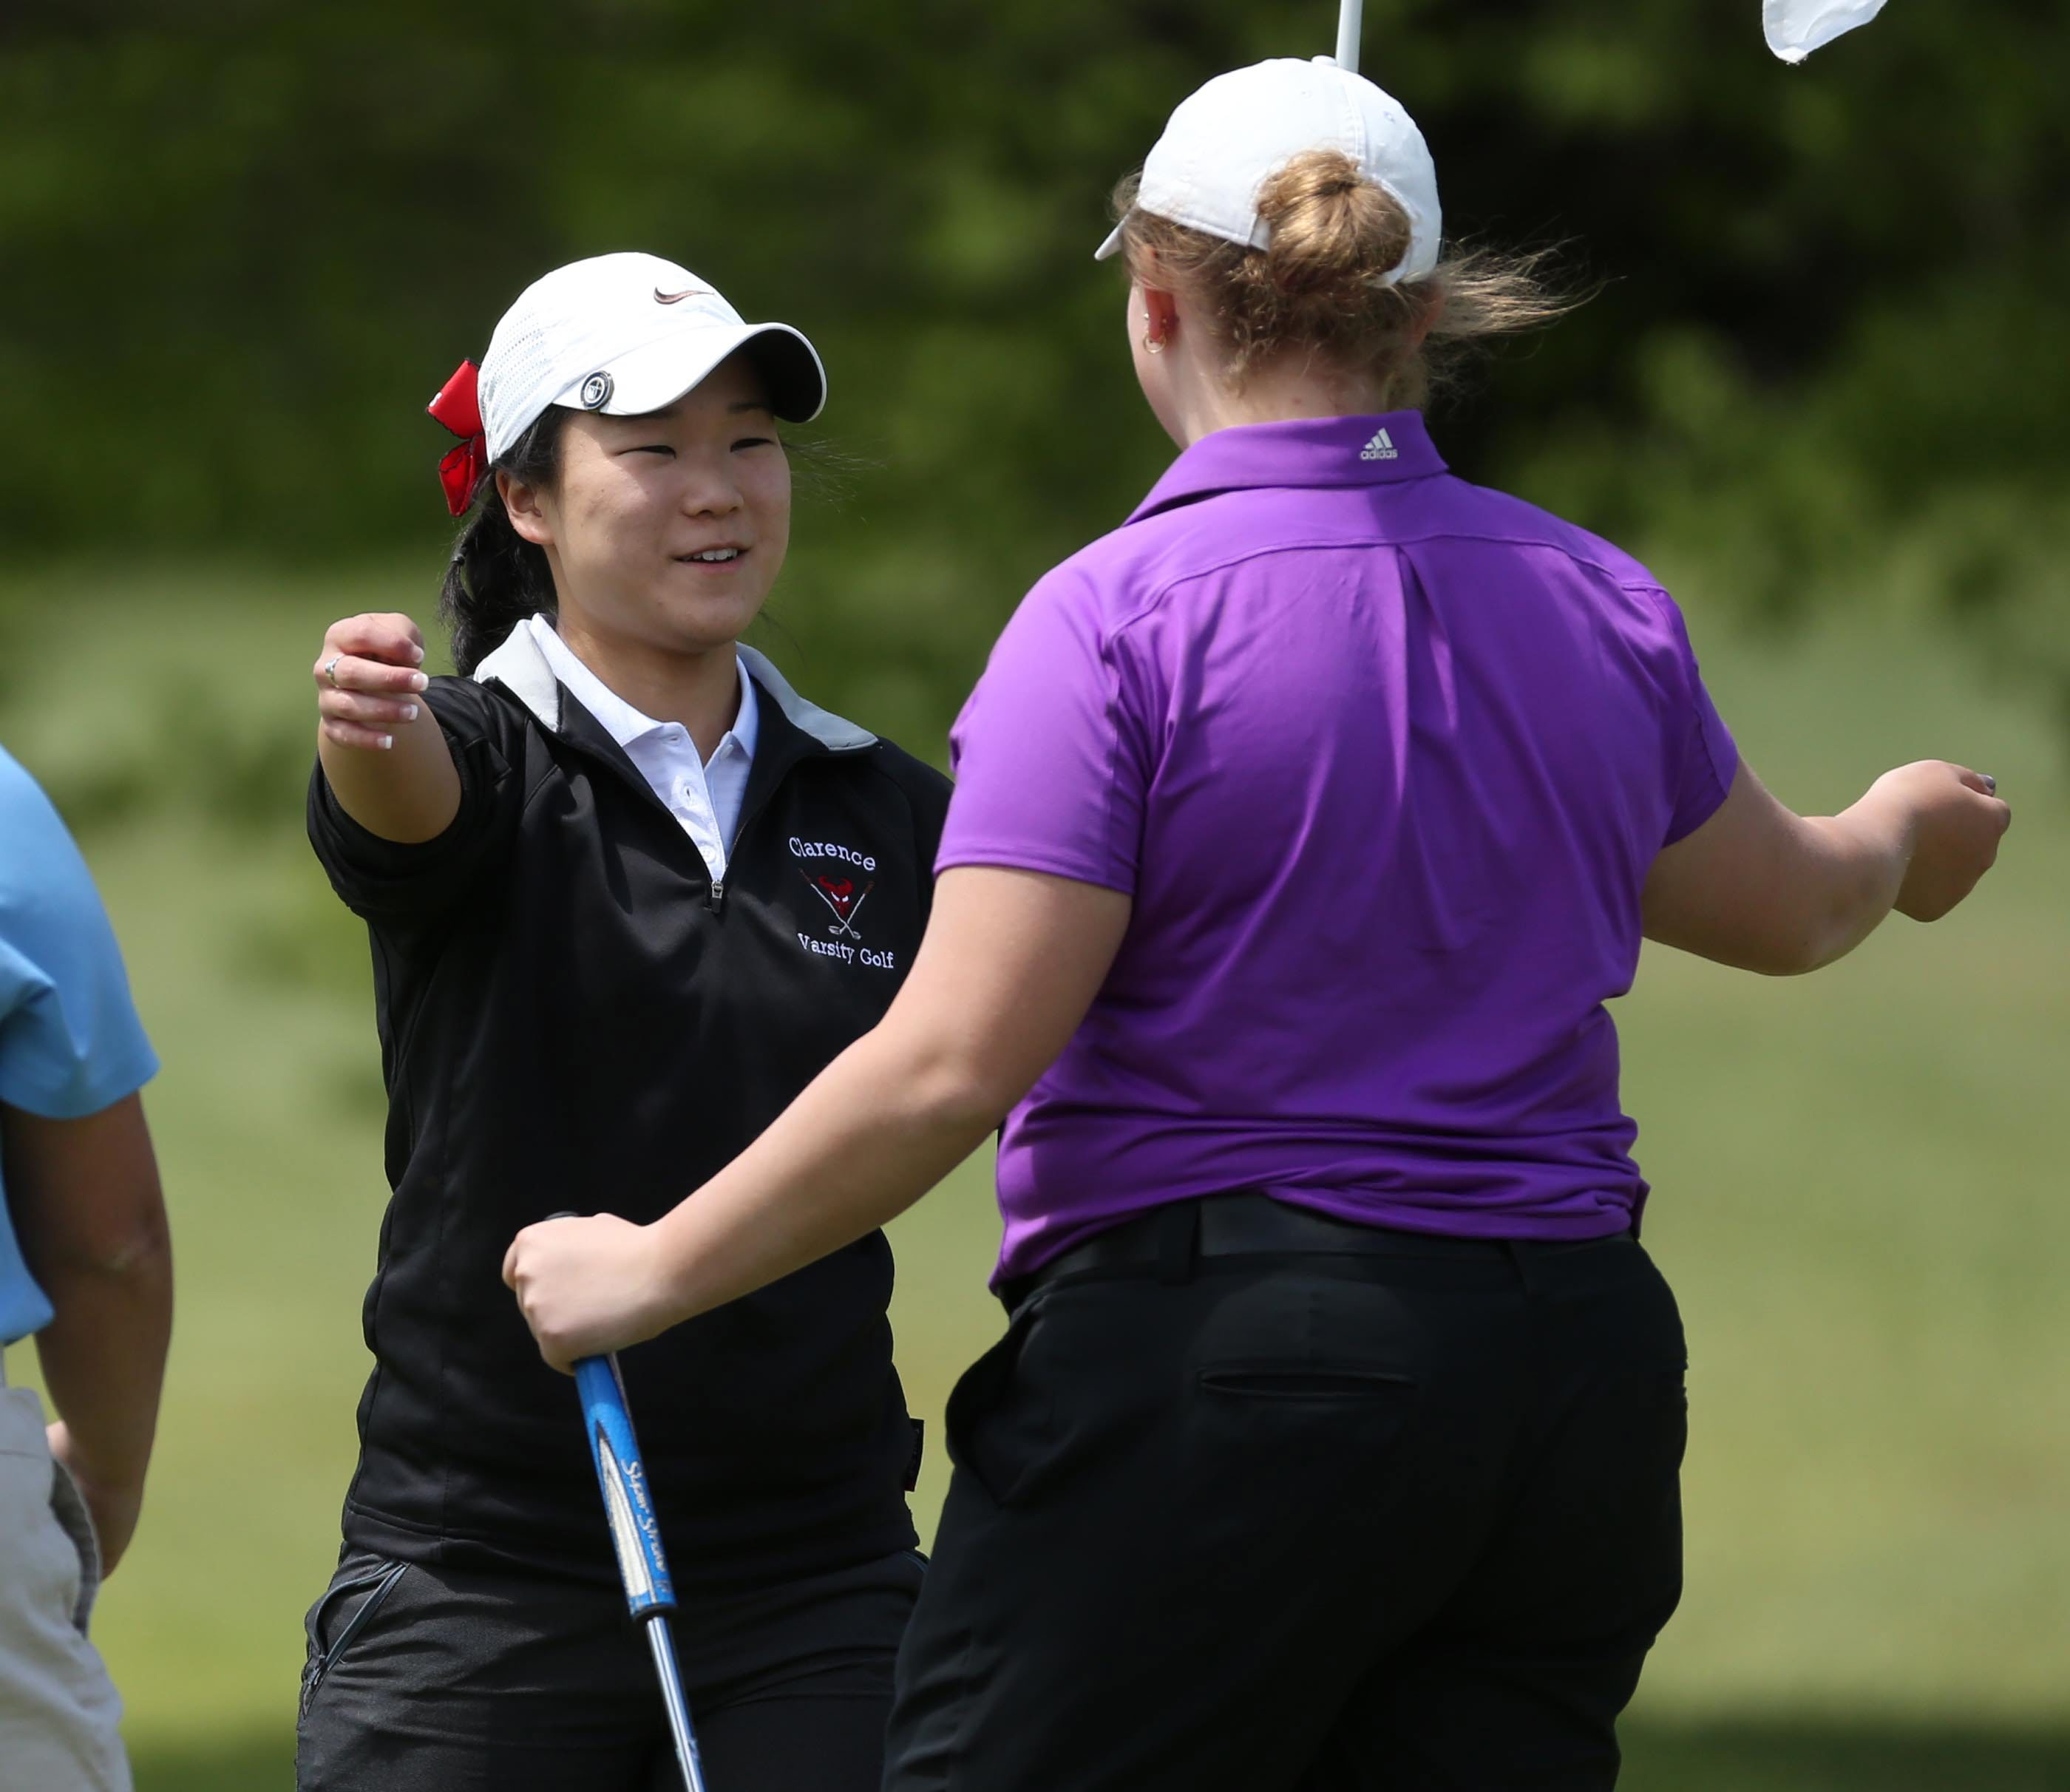 Alexis Kim, left, is congratulated by fellow competitor Marissa DelMonaco on her win in the Section VI girls golf championship Wednesday at Gowanda Country Club. DelMonaco took second place.